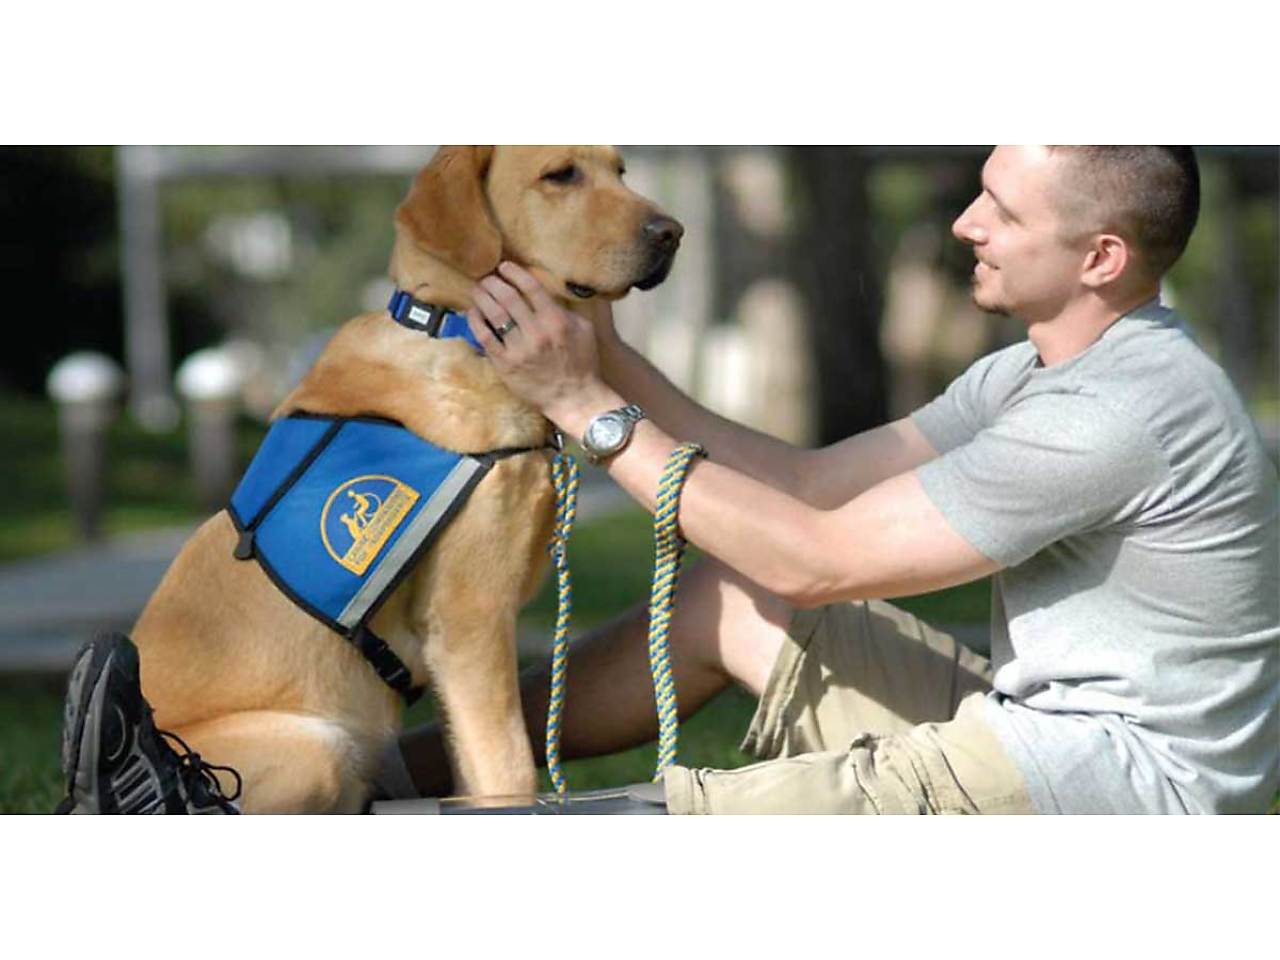 ptsd dpg.jpg - Service Dog for Veteran with PTSD image